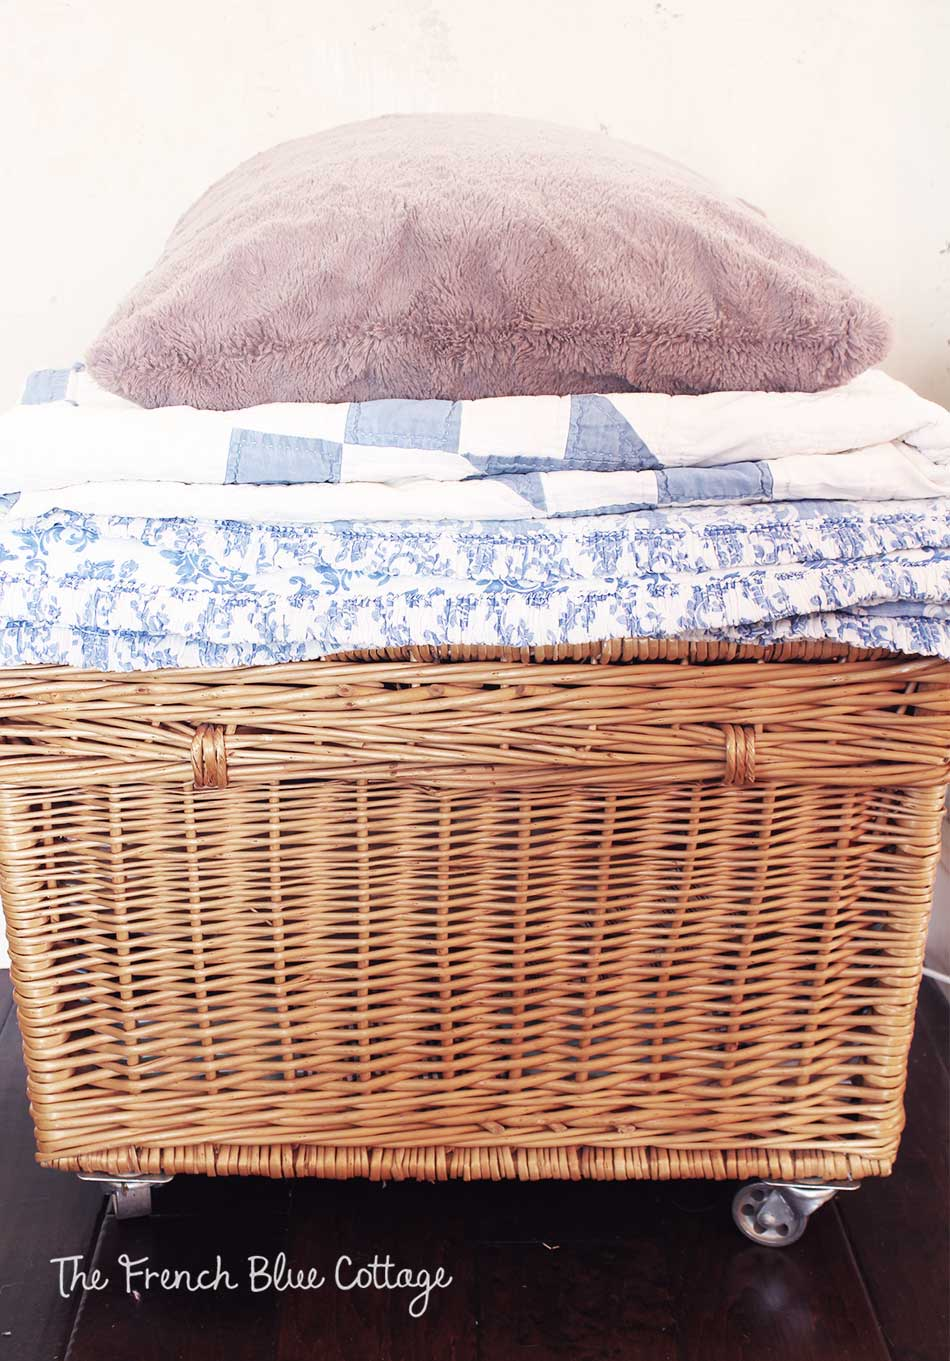 Cozy stack of blankets and quilts.